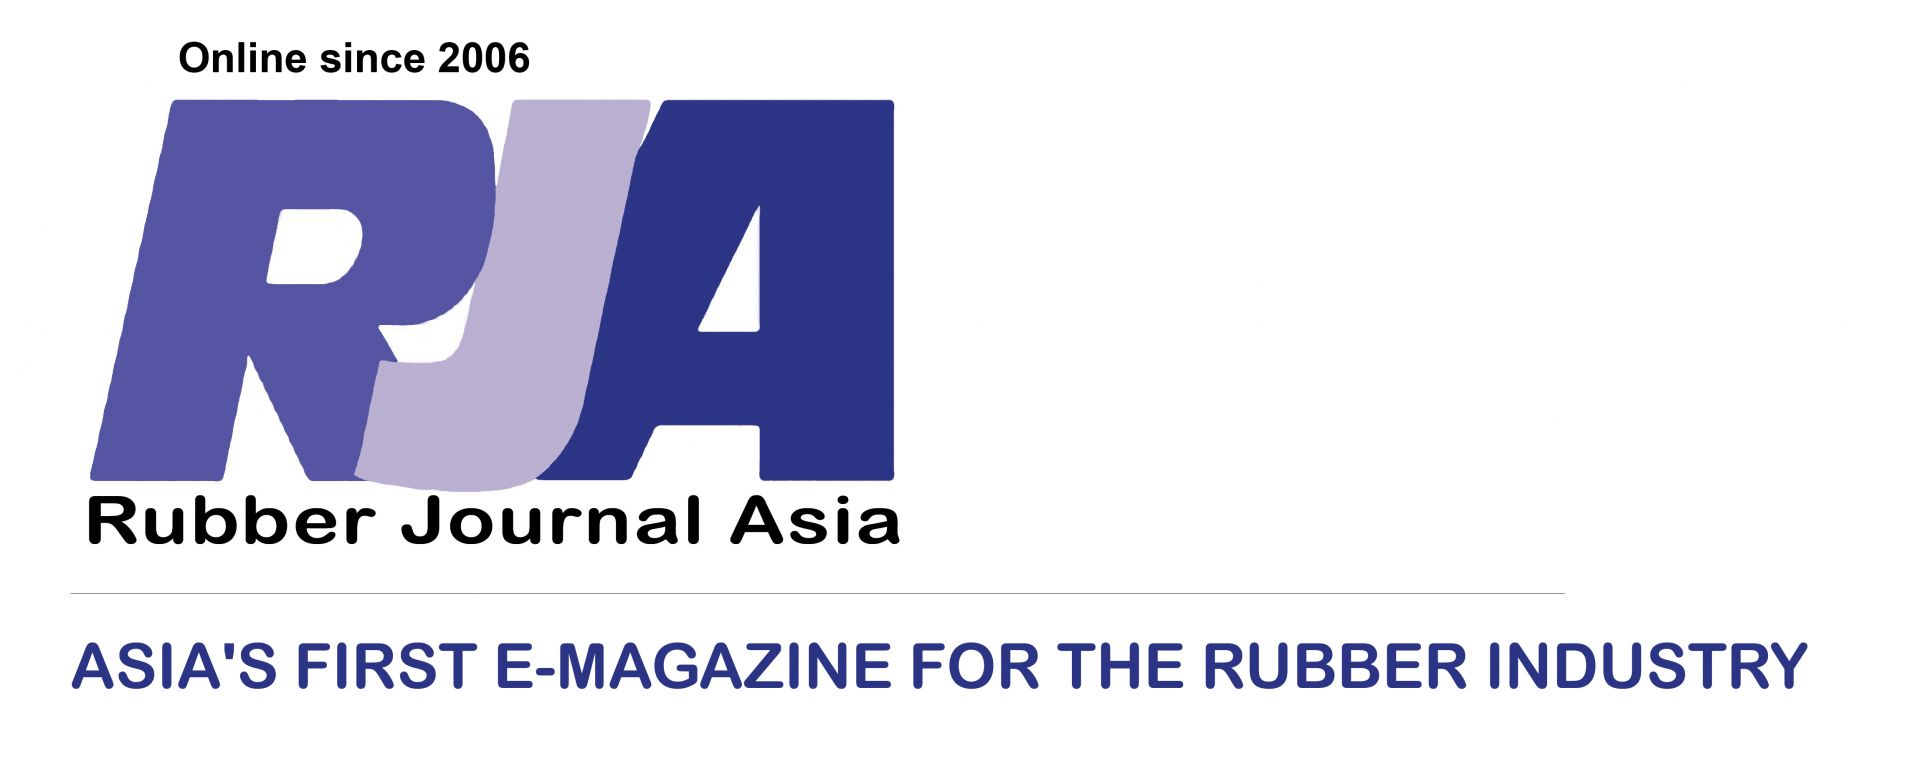 Rubber Journal Asia (RJA)